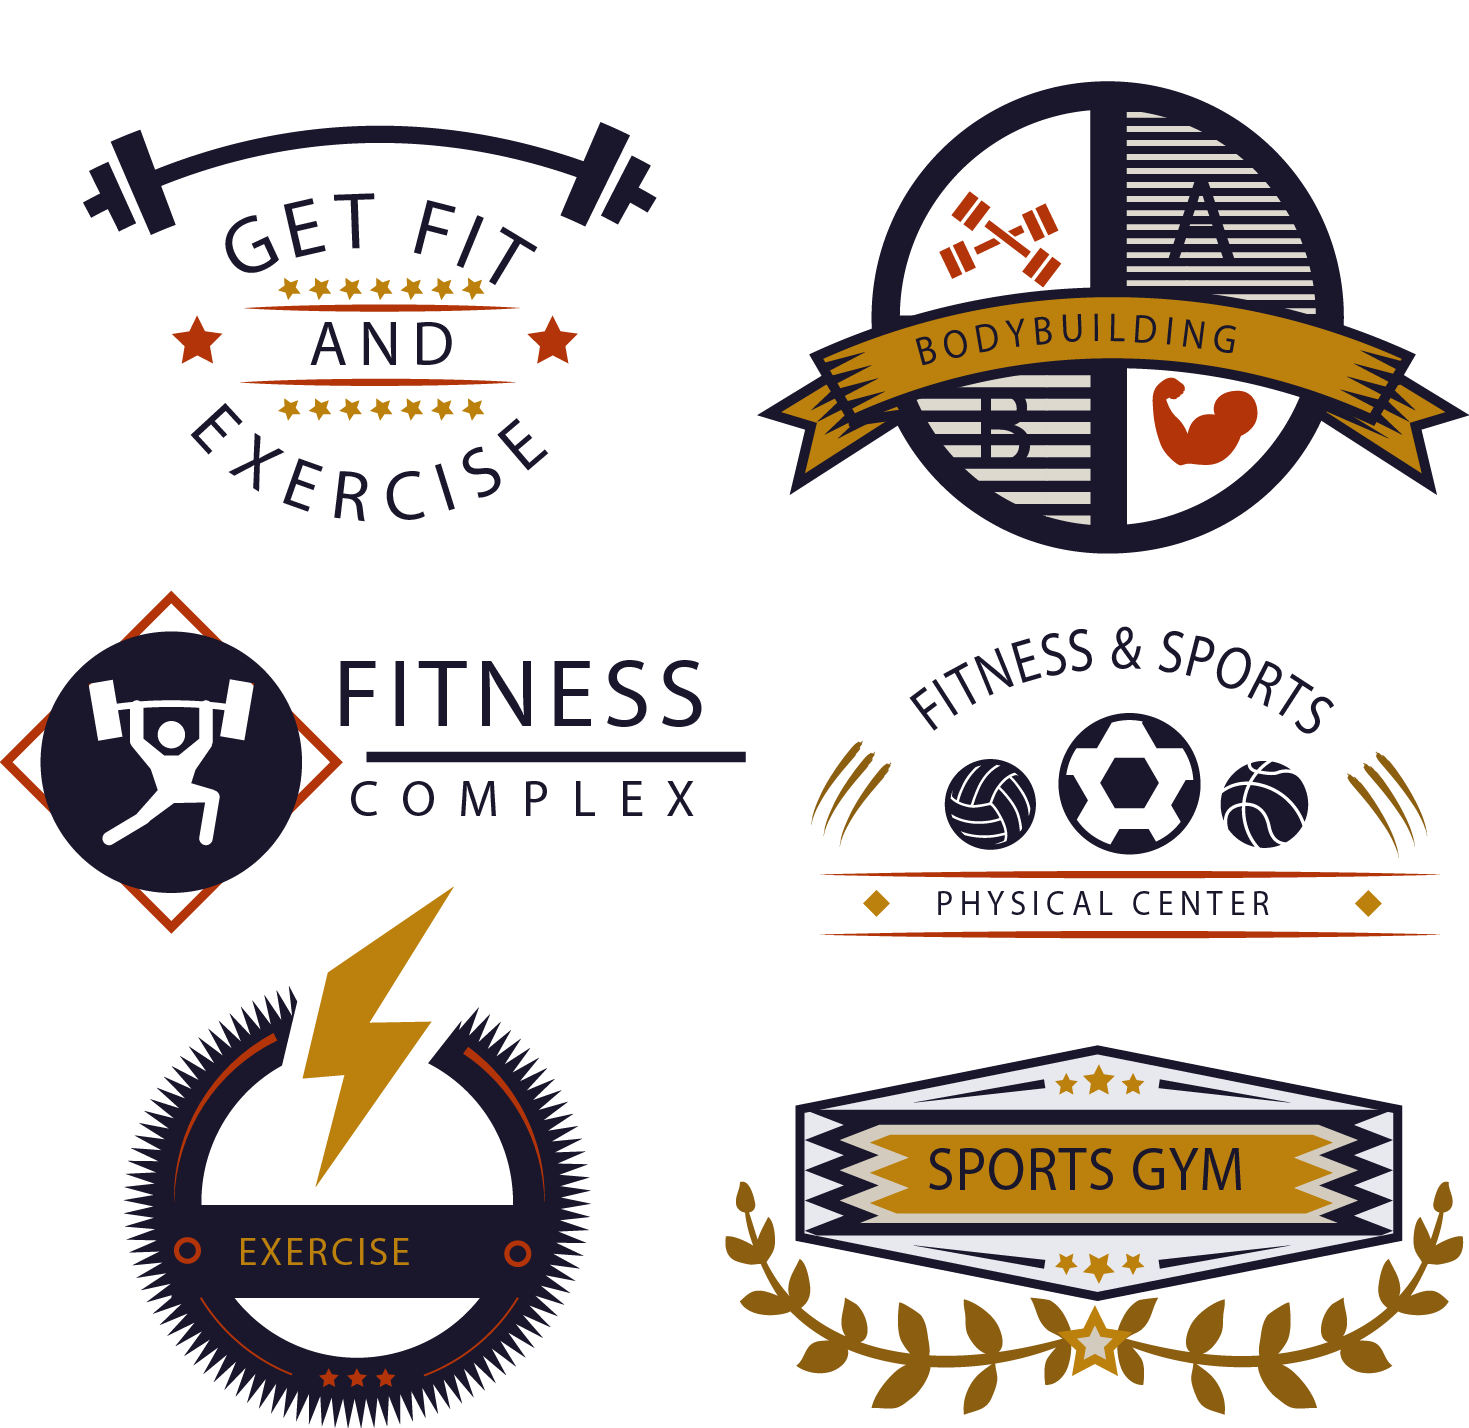 Centre Gym Golds Vector Fitness Logo Icon PNG Image